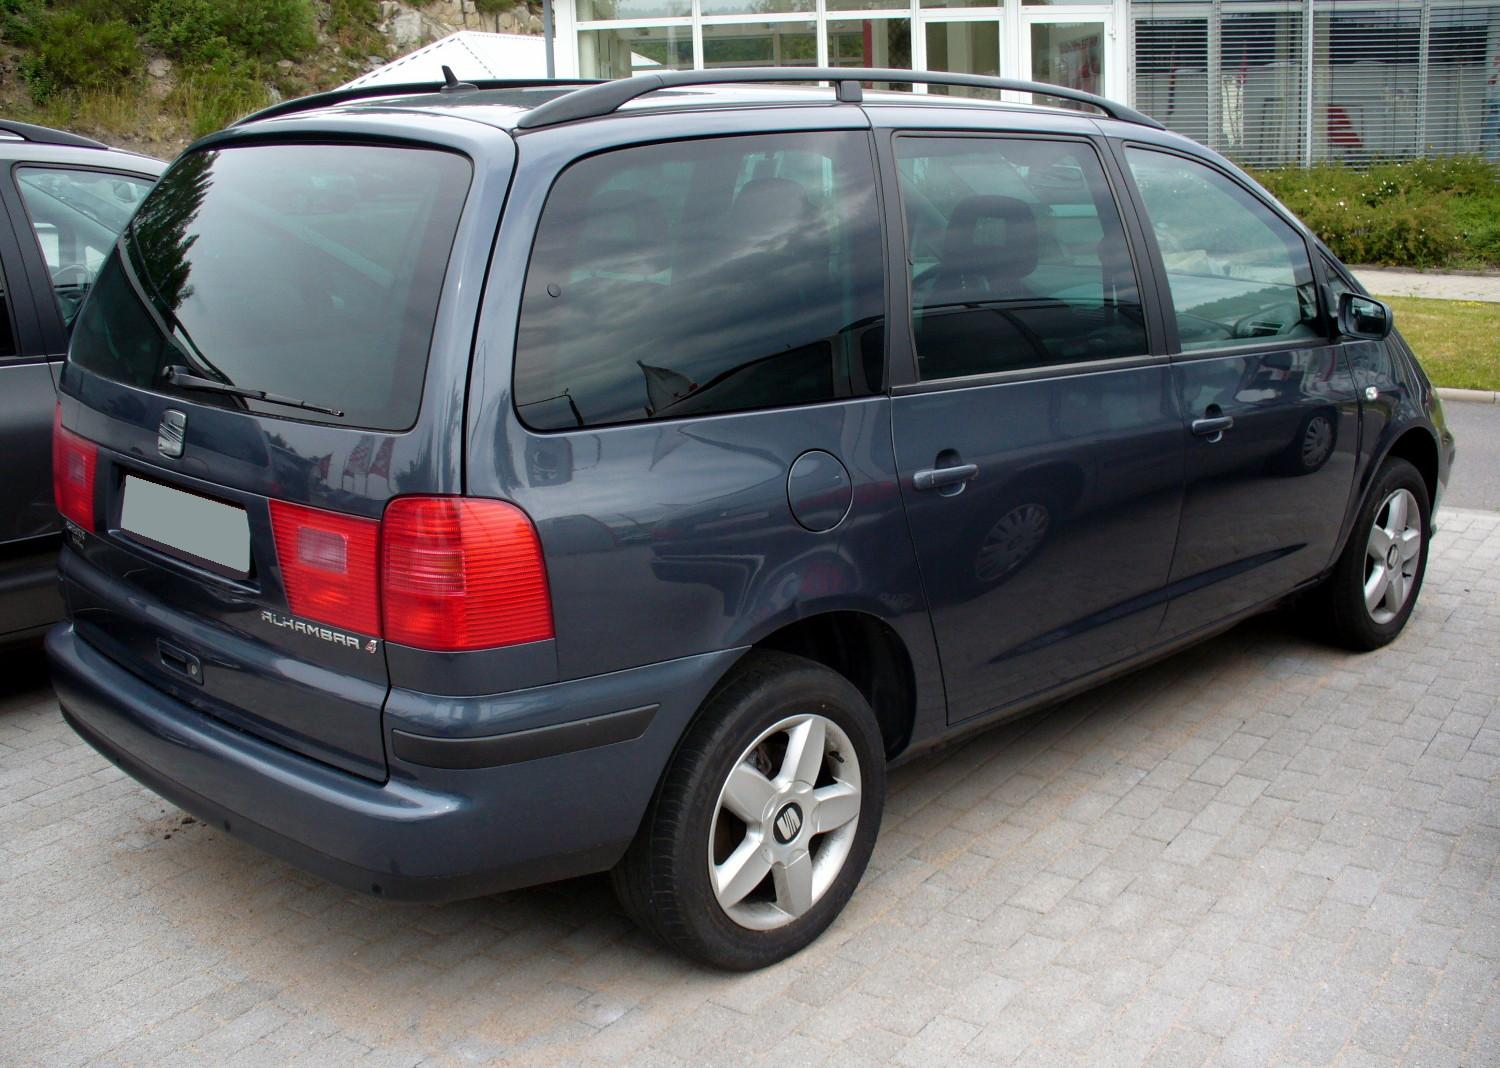 file seat alhambra 4 facelift heck jpg wikimedia commons. Black Bedroom Furniture Sets. Home Design Ideas